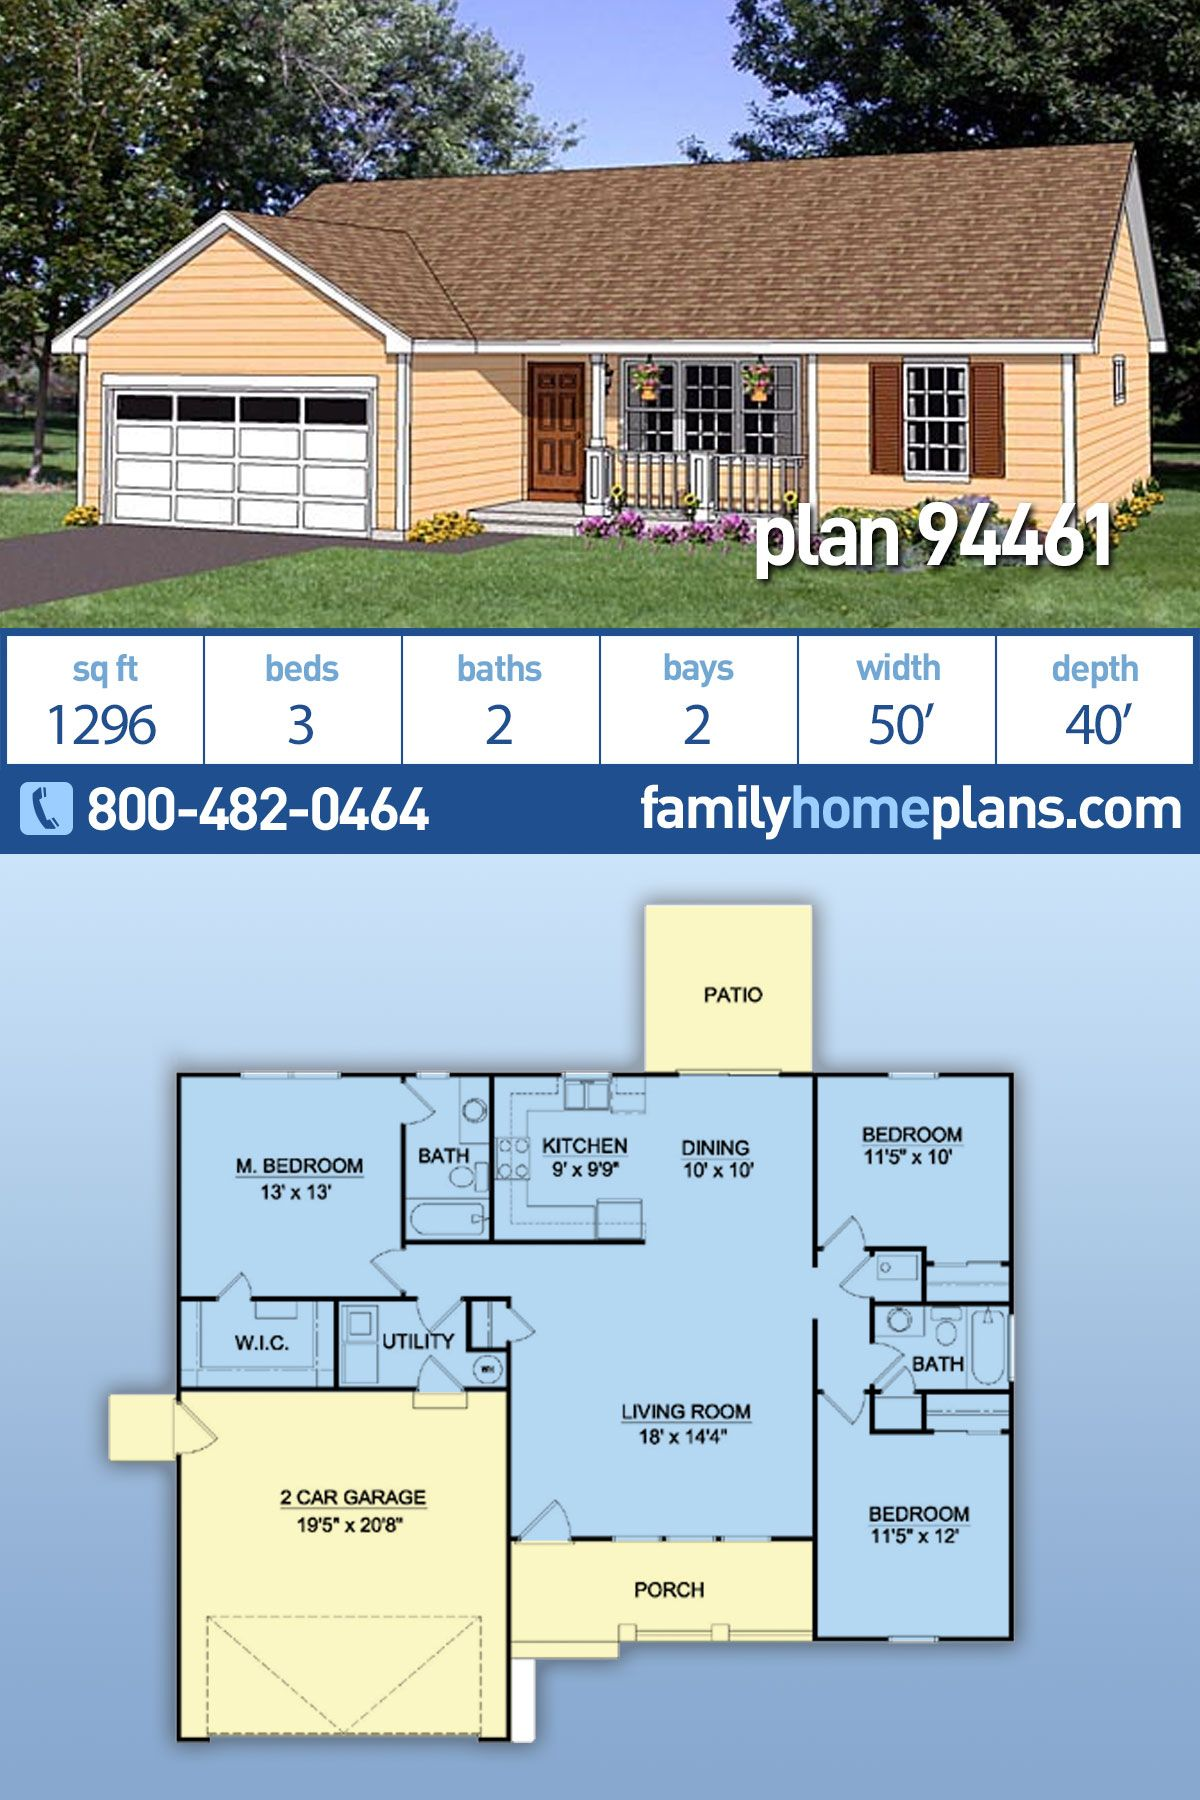 Ranch Style House Plan 94461 With 3 Bed 2 Bath 2 Car Garage Ranch Style House Plans House Plans Ranch House Plans